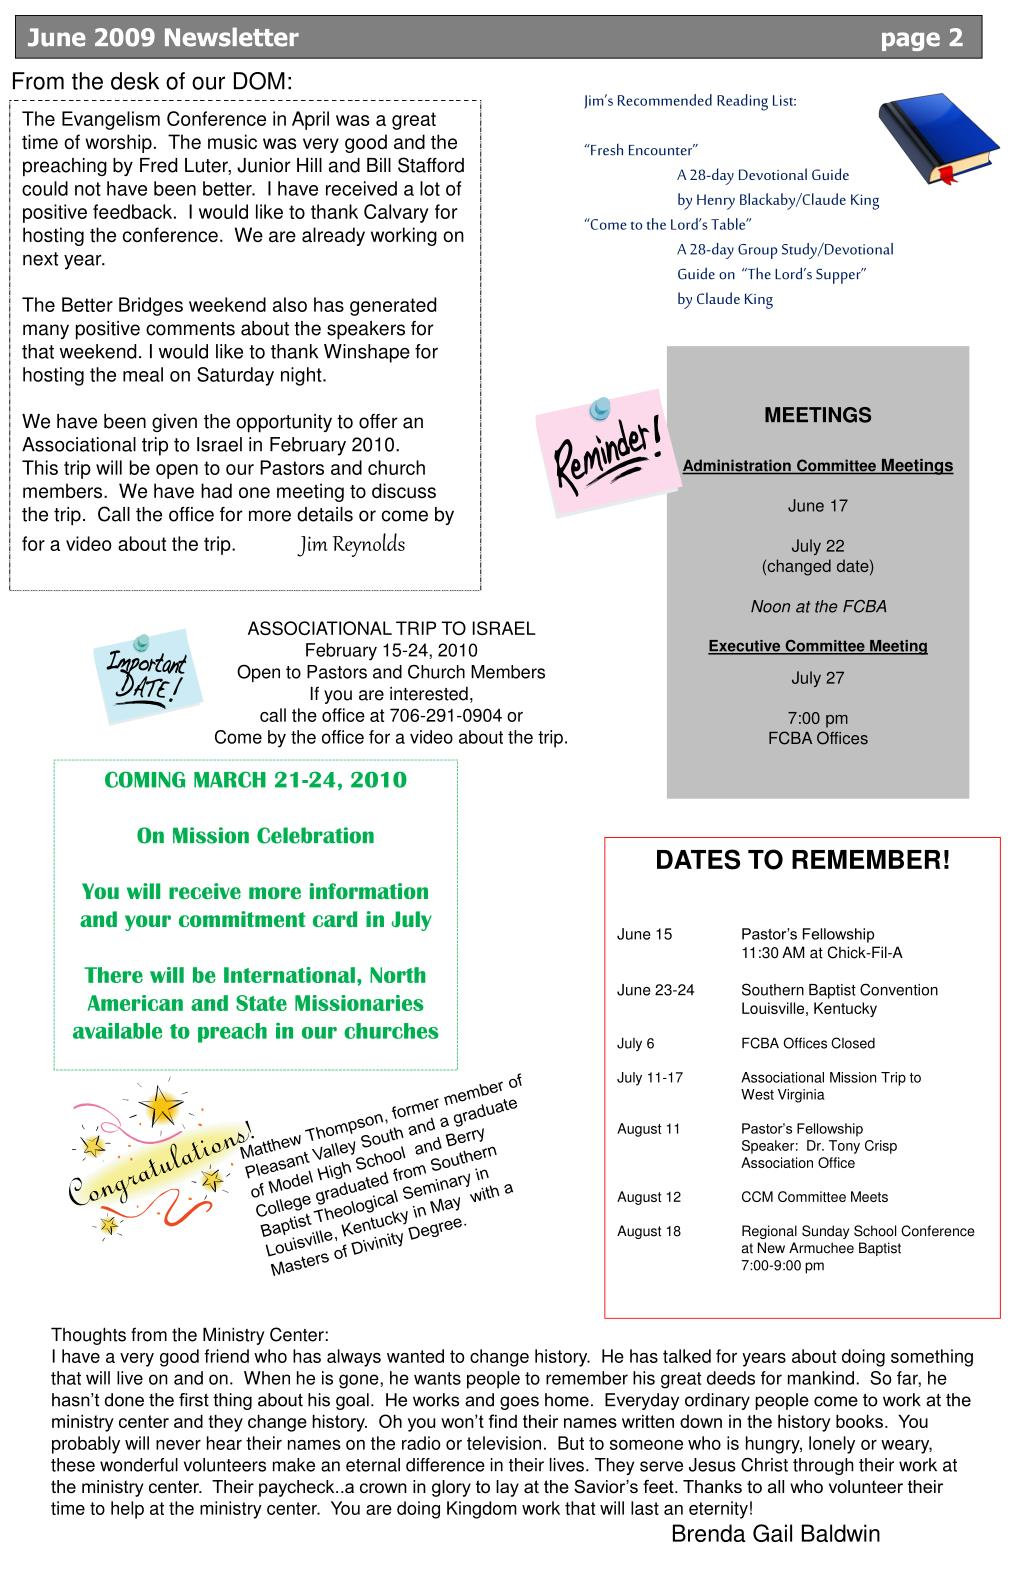 June 2009 Newsletter                                page 2